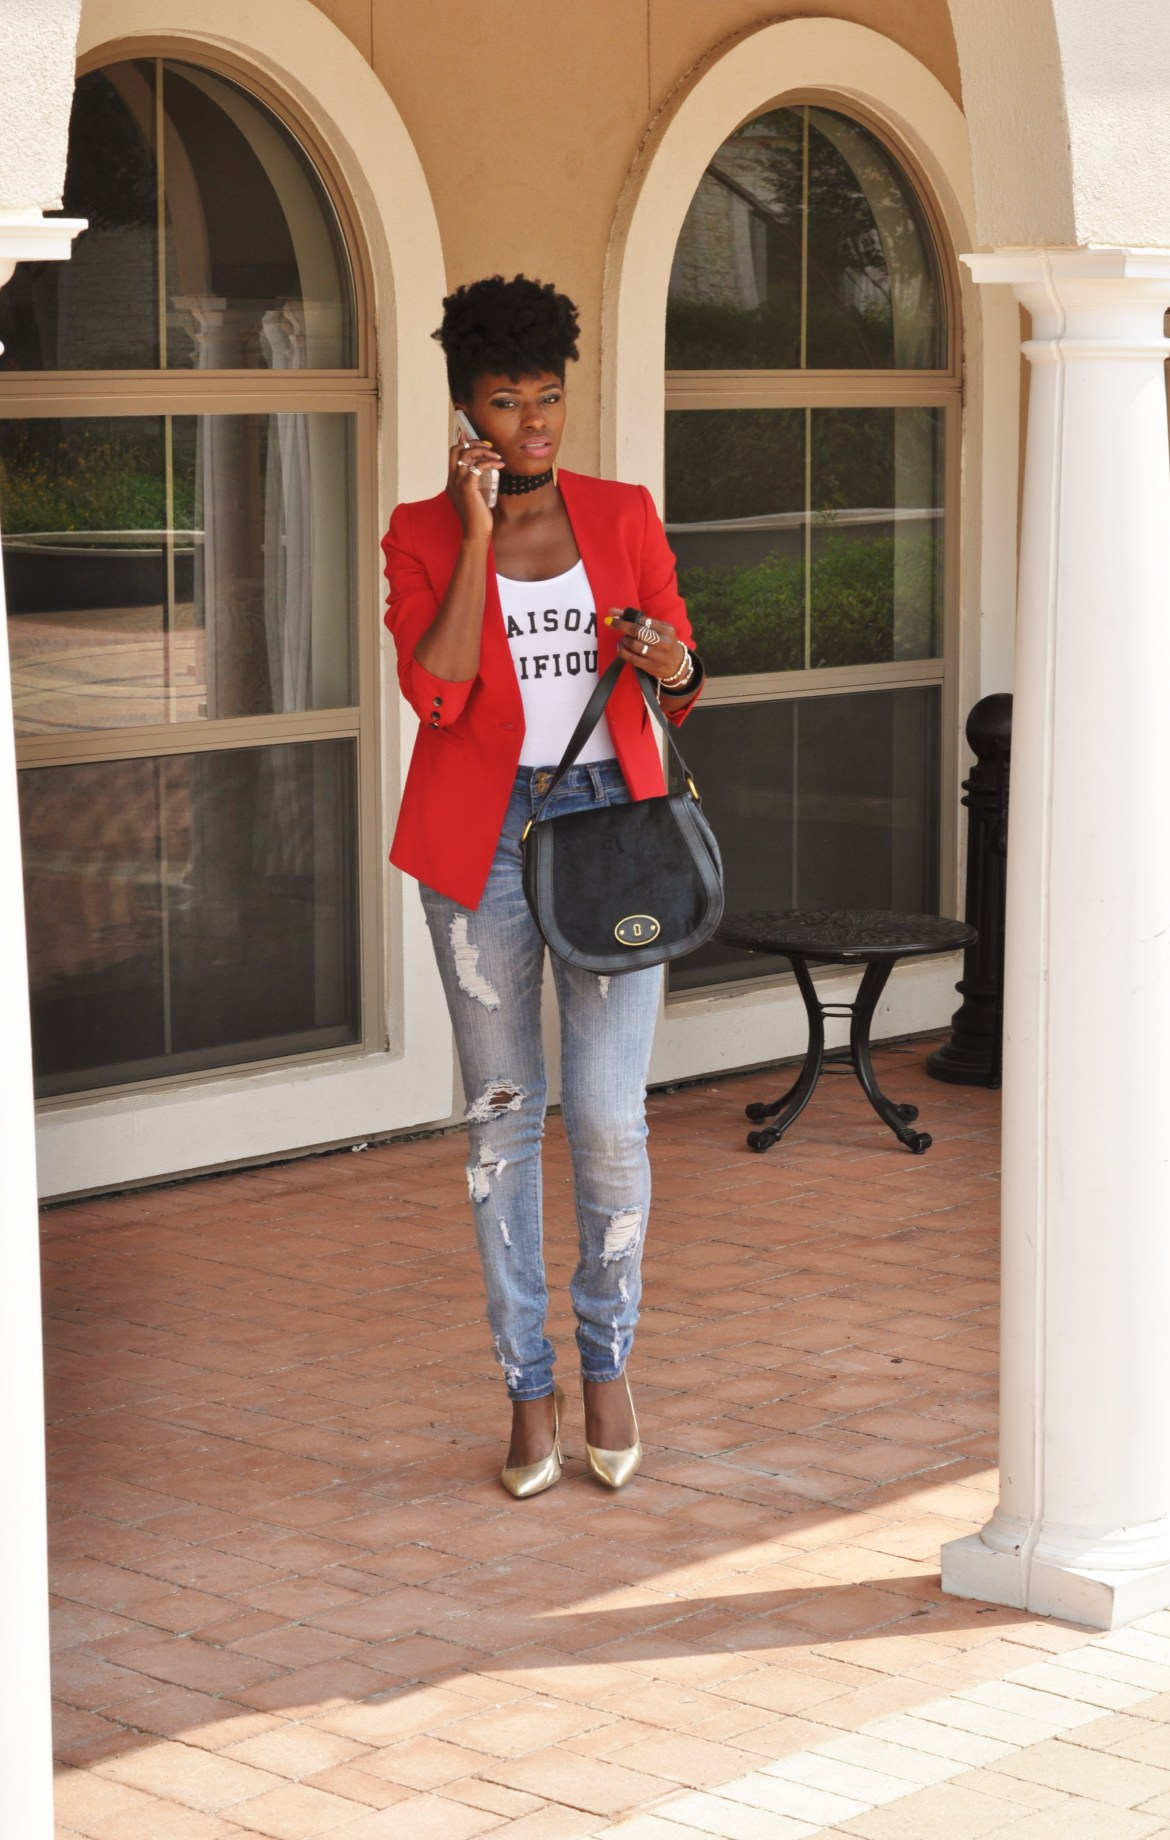 Maison Pacifique indeed. Lovely look on this beautiful lady.